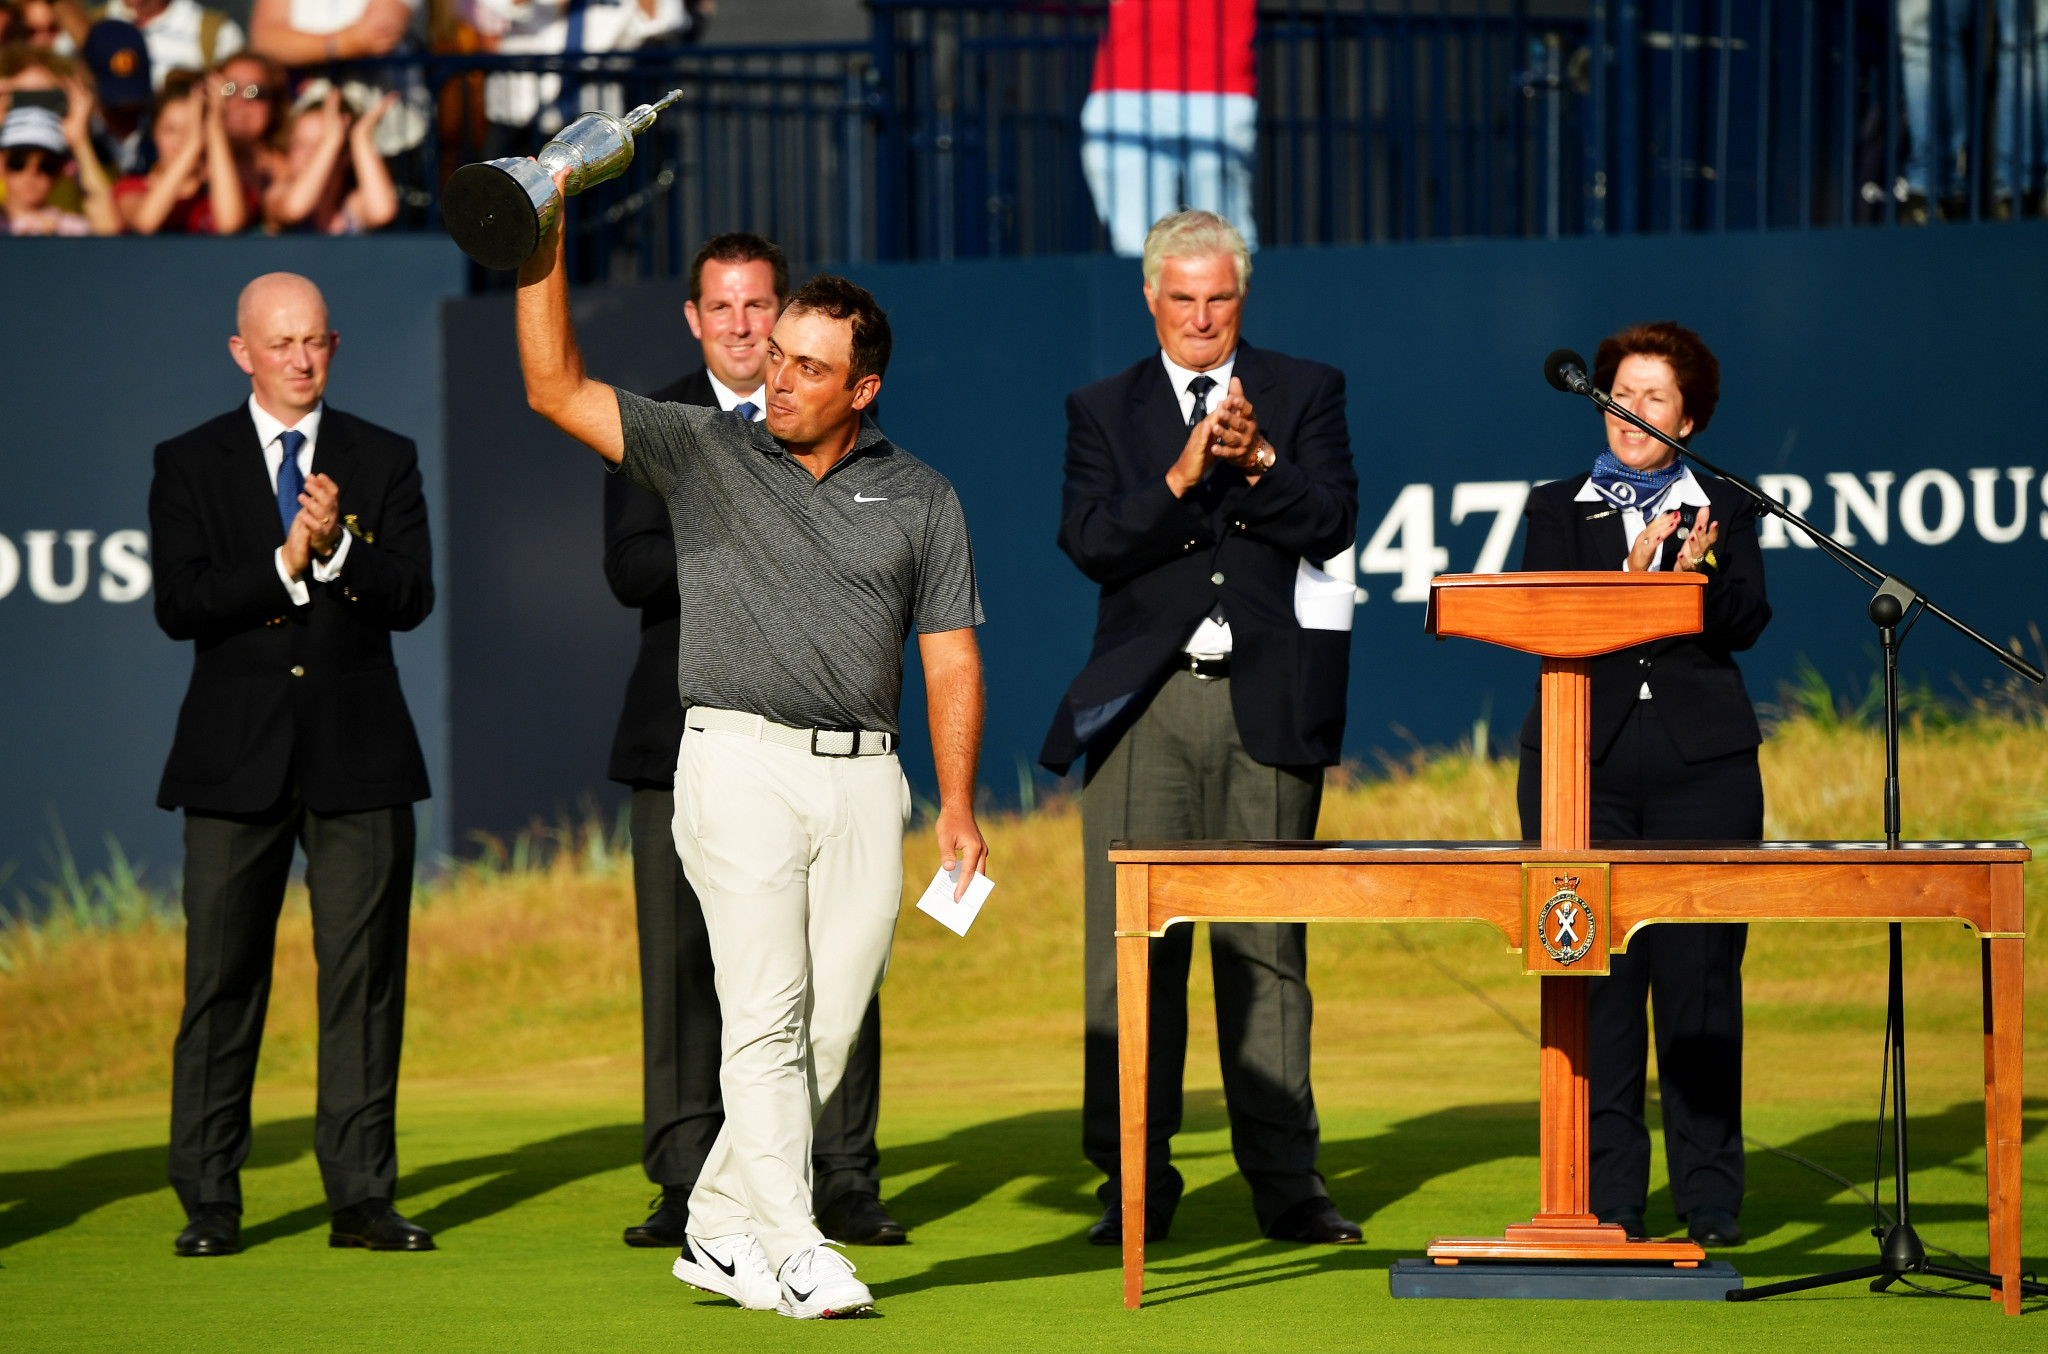 Molinari claims first major championship after emerging from pack to win The Open